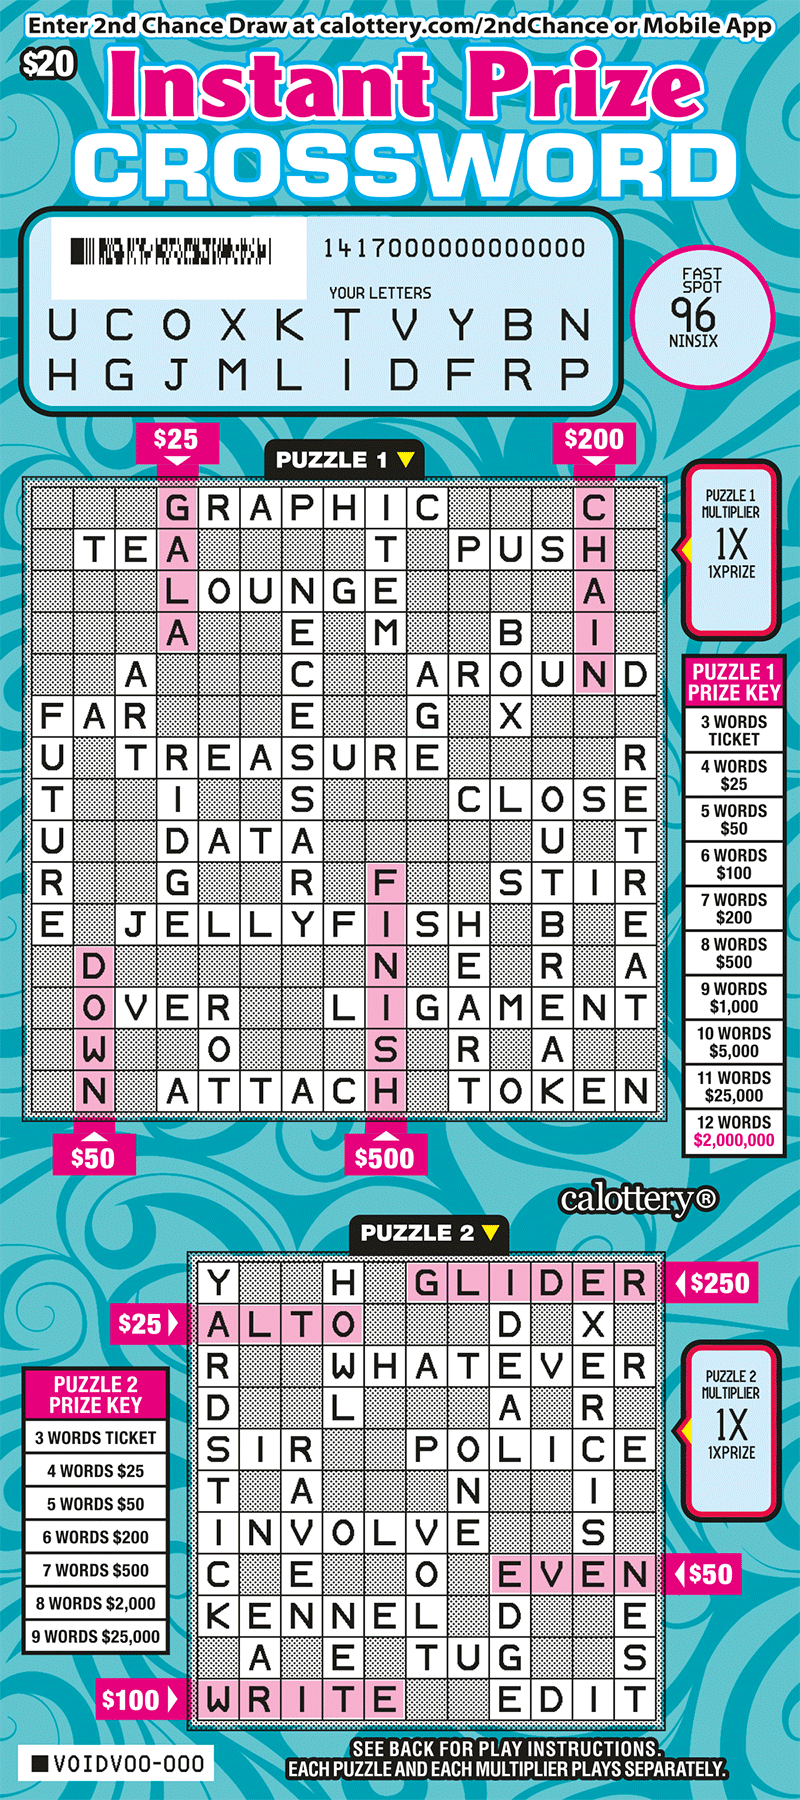 $20 Instant Prize Crossword scratched ticket